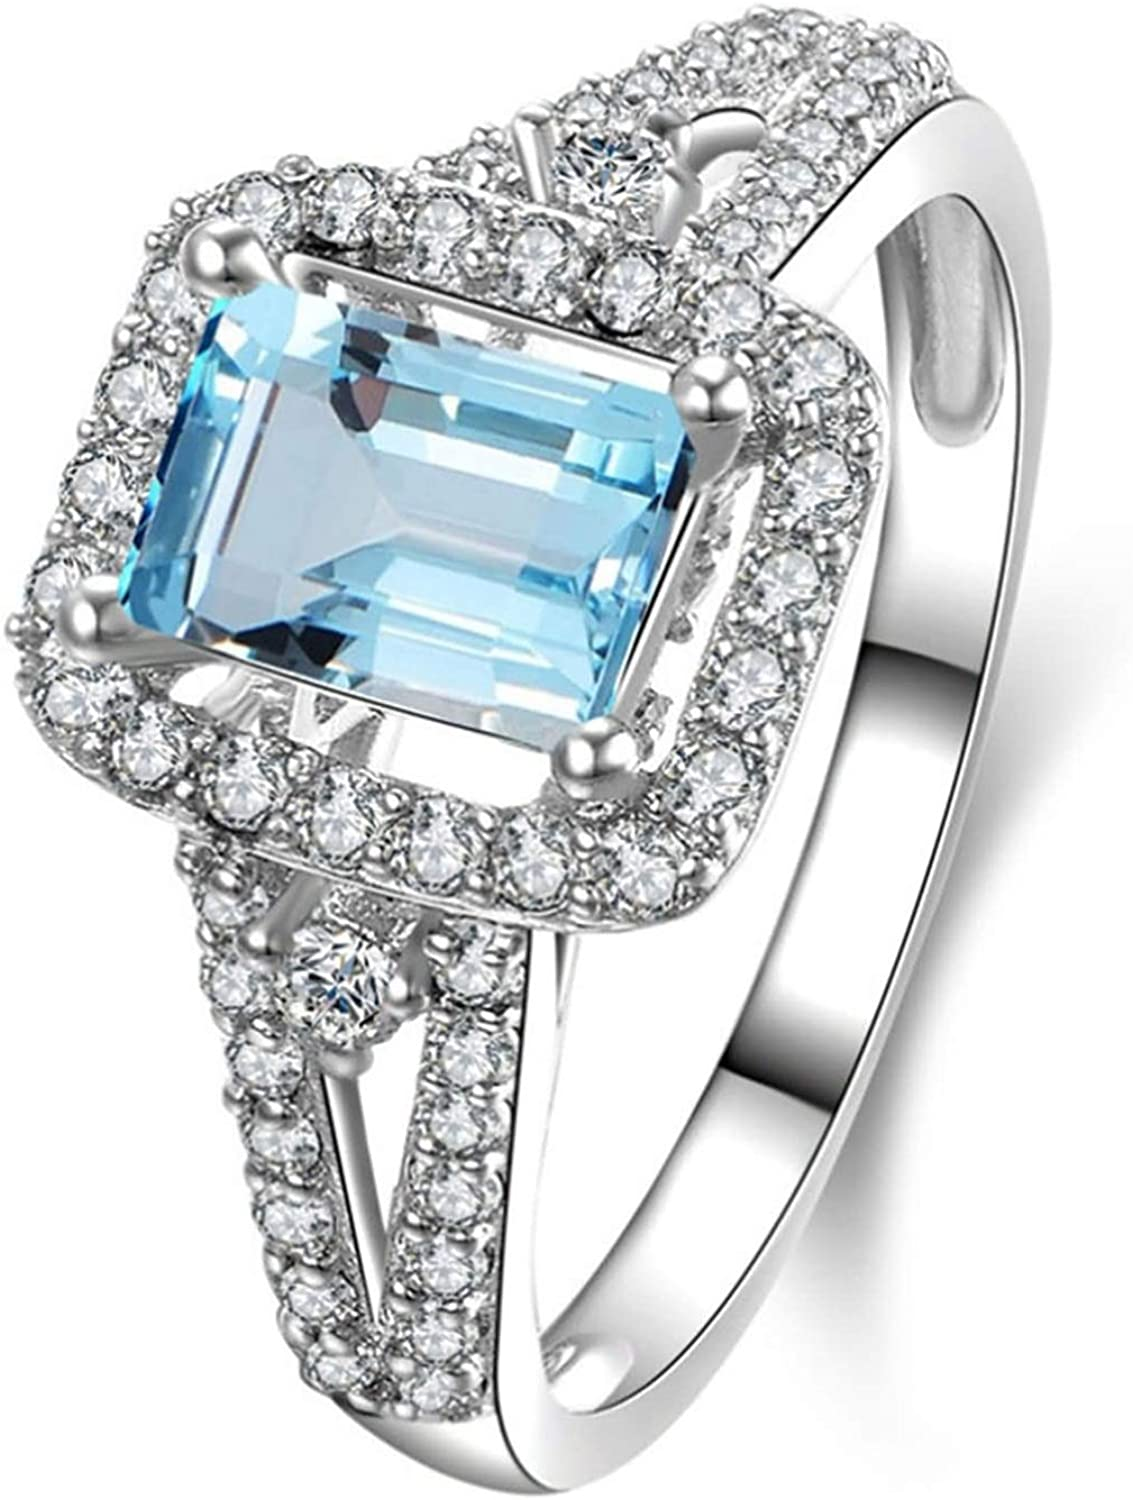 AMDXD Jewellery 925 Sterling Silver Anniversary Ring Girl Square Cut Topaz Square Rings